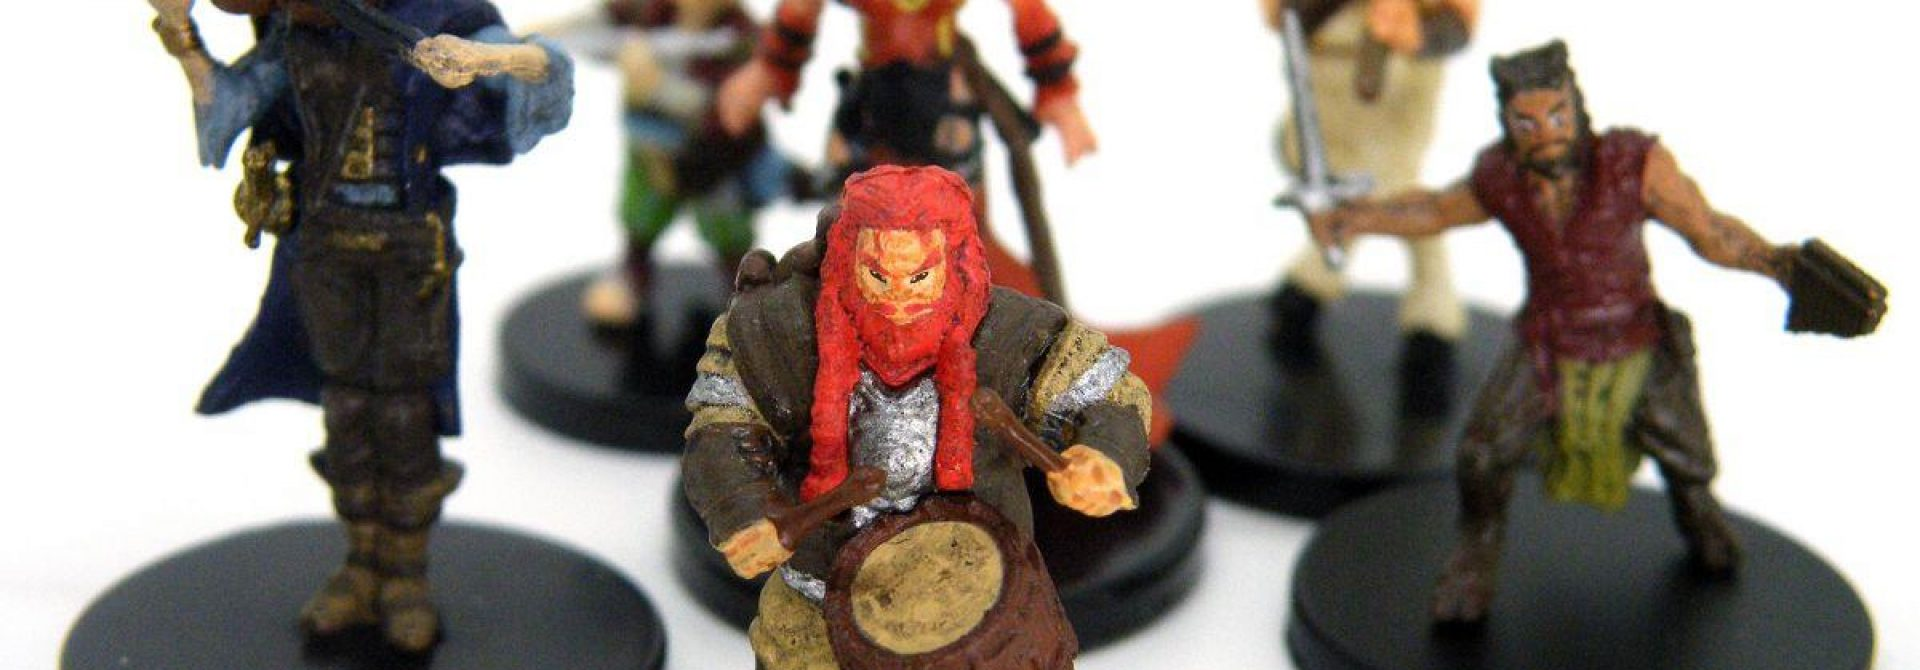 Ride or Die: The Importance of Teamwork in D&D – For Those About To Roll, We Salute You!